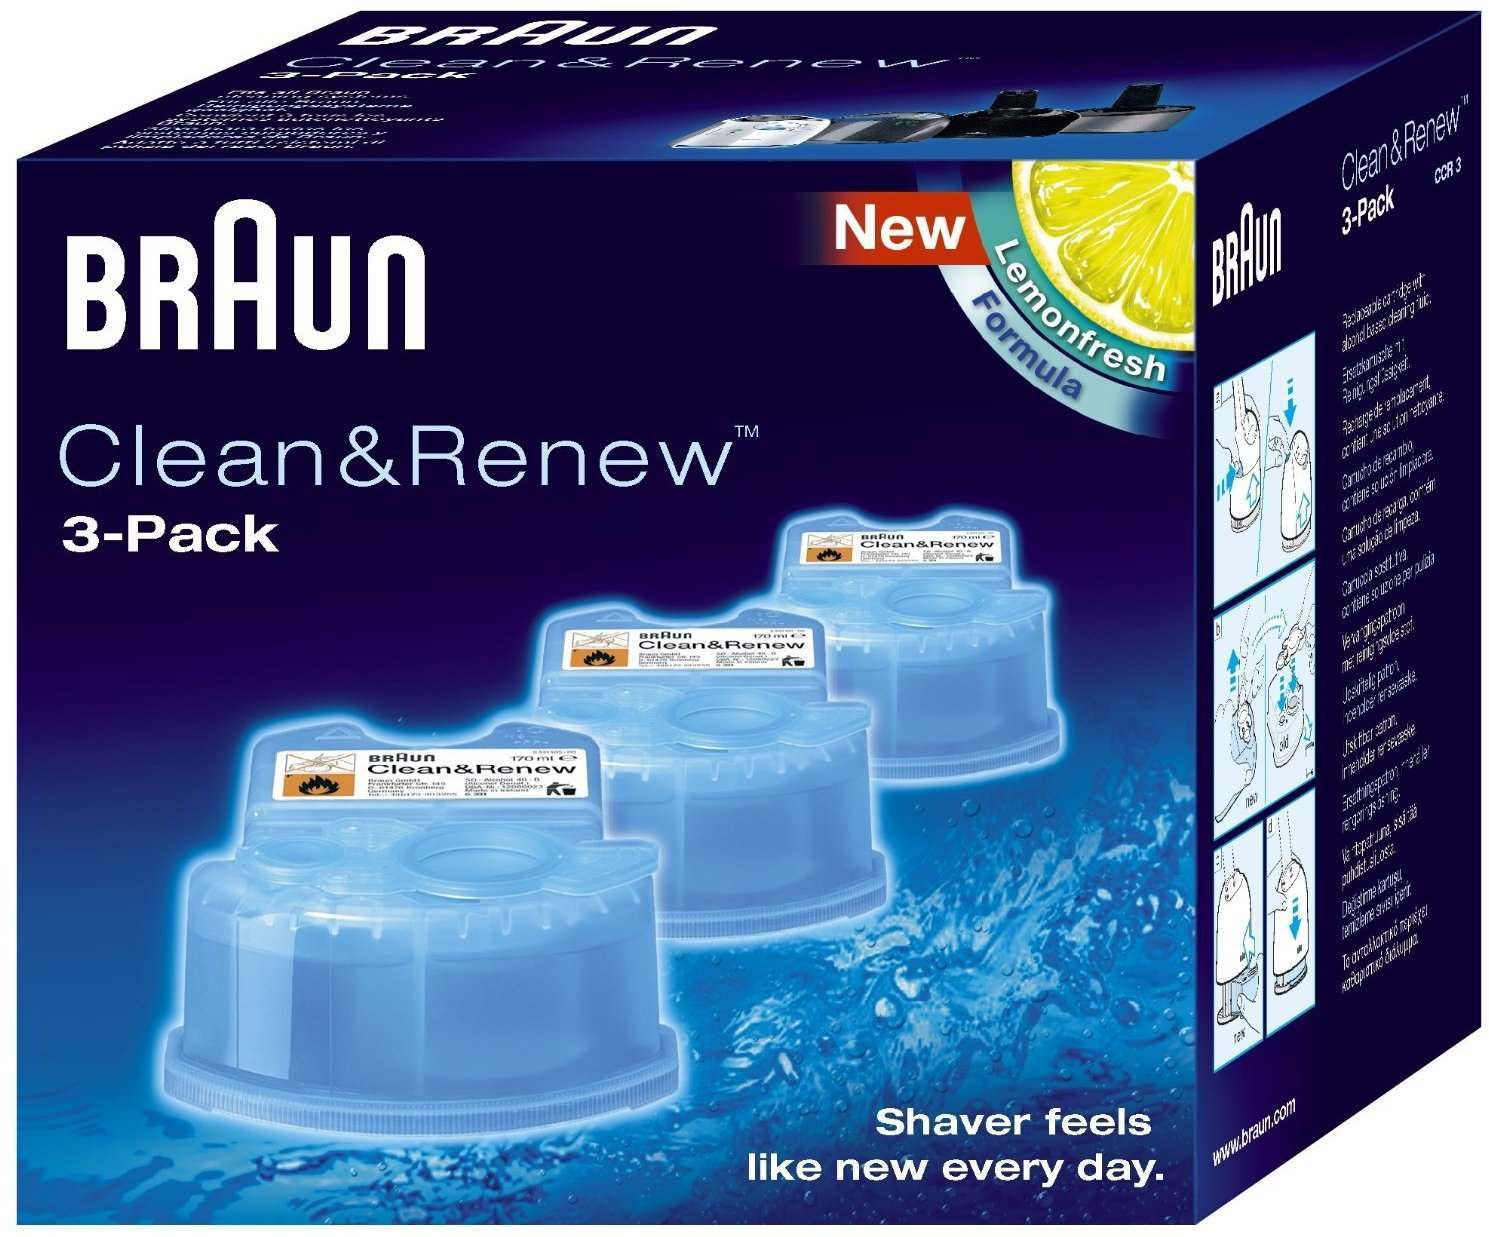 Braun CCR3 Clean & Renew Pack of 3 Cleaning Refill